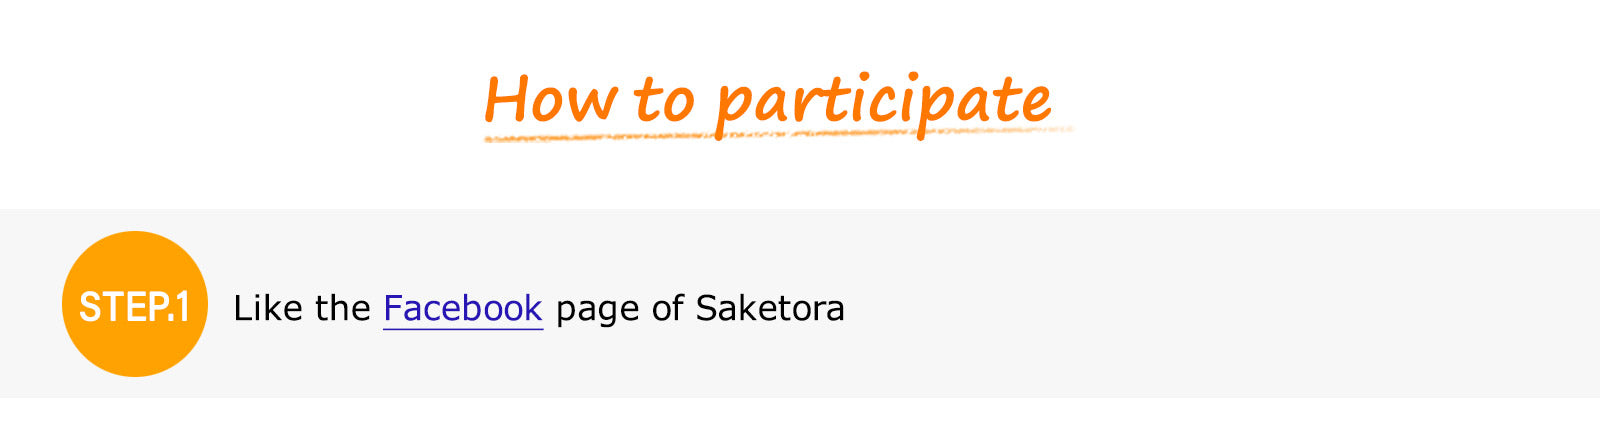 Saketora - How to participate